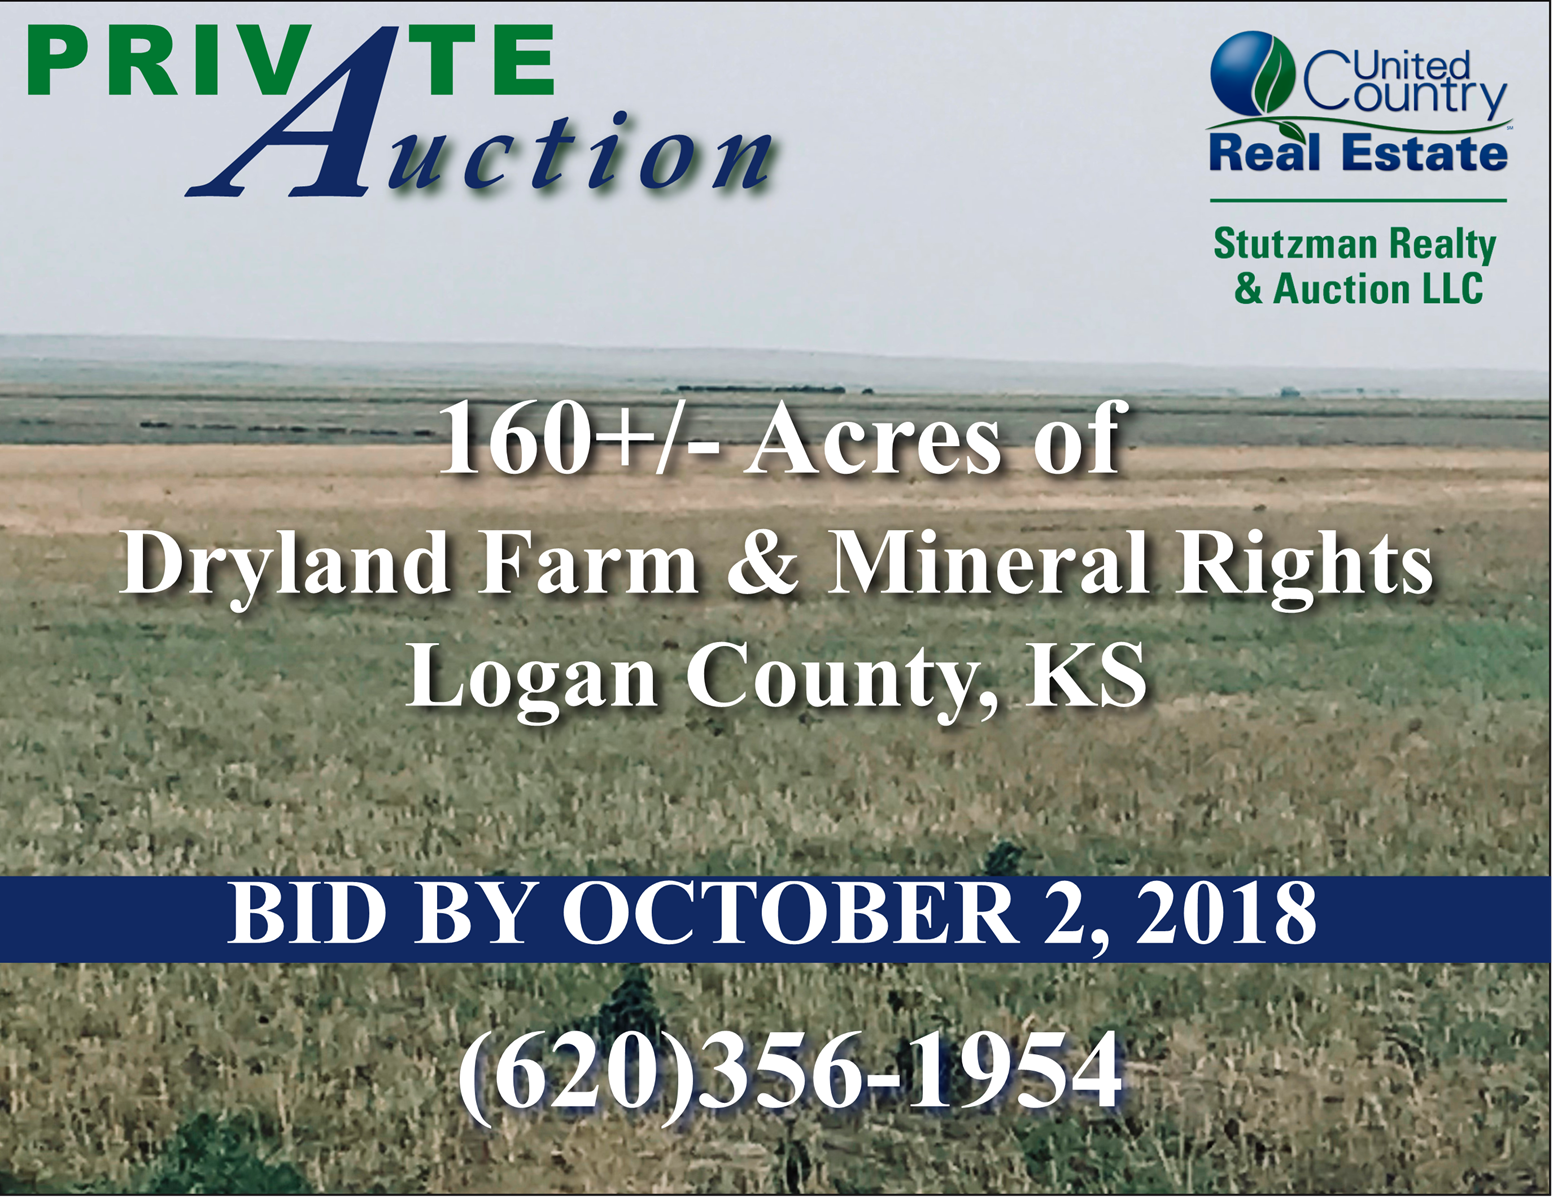 LOGAN COUNTY, KS AUCTION - 160+/- ACRE FARM & MINERAL RIGHTS